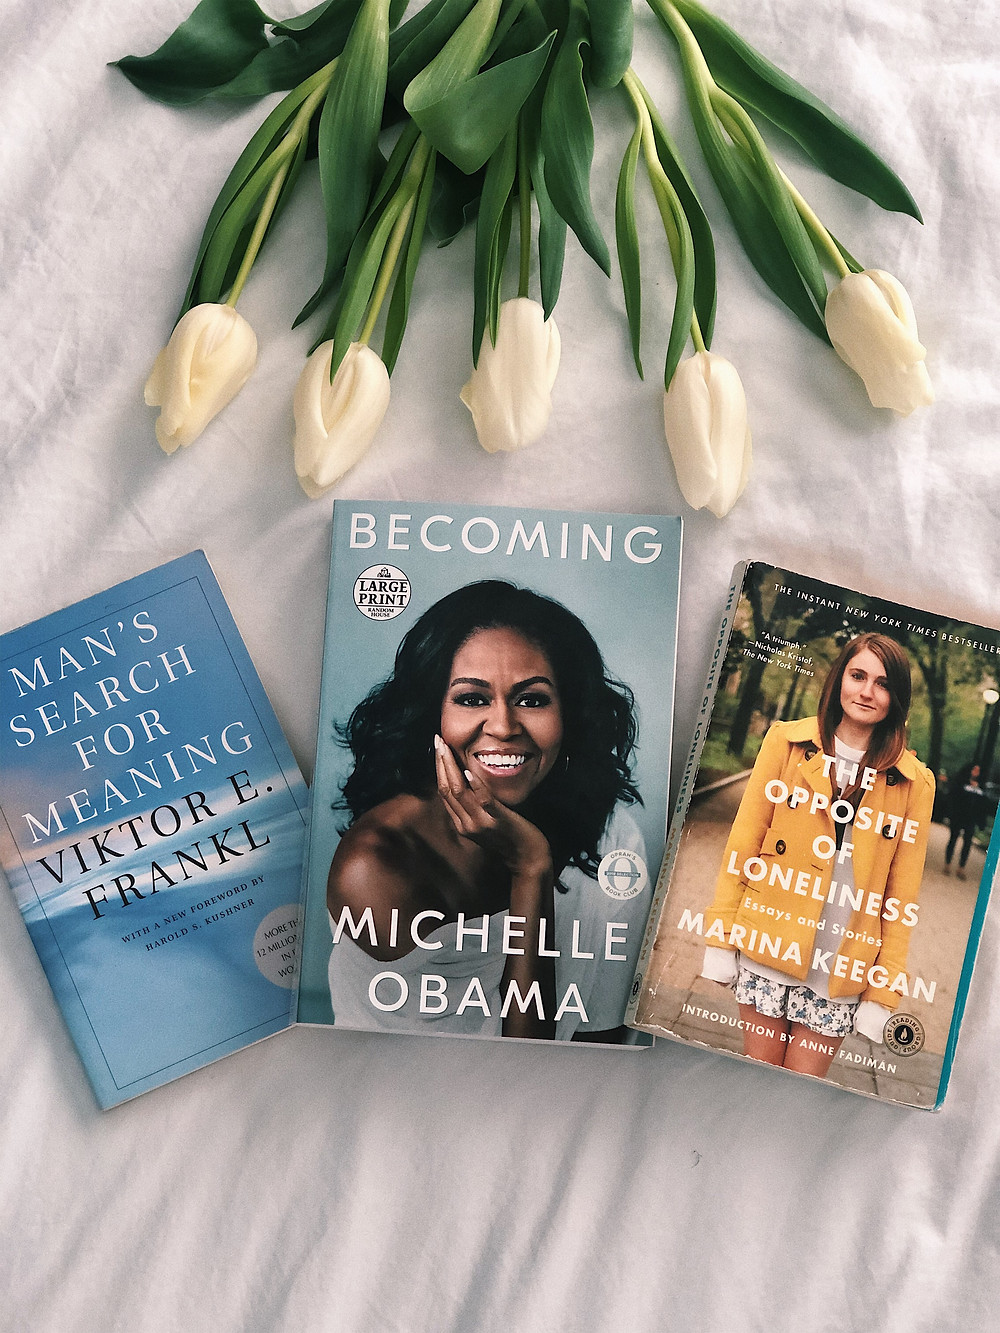 pinterest book flatlay photo bookish aesthetic michelle obama becoming tulip floral blooms victor frankl marina keegan recommendation